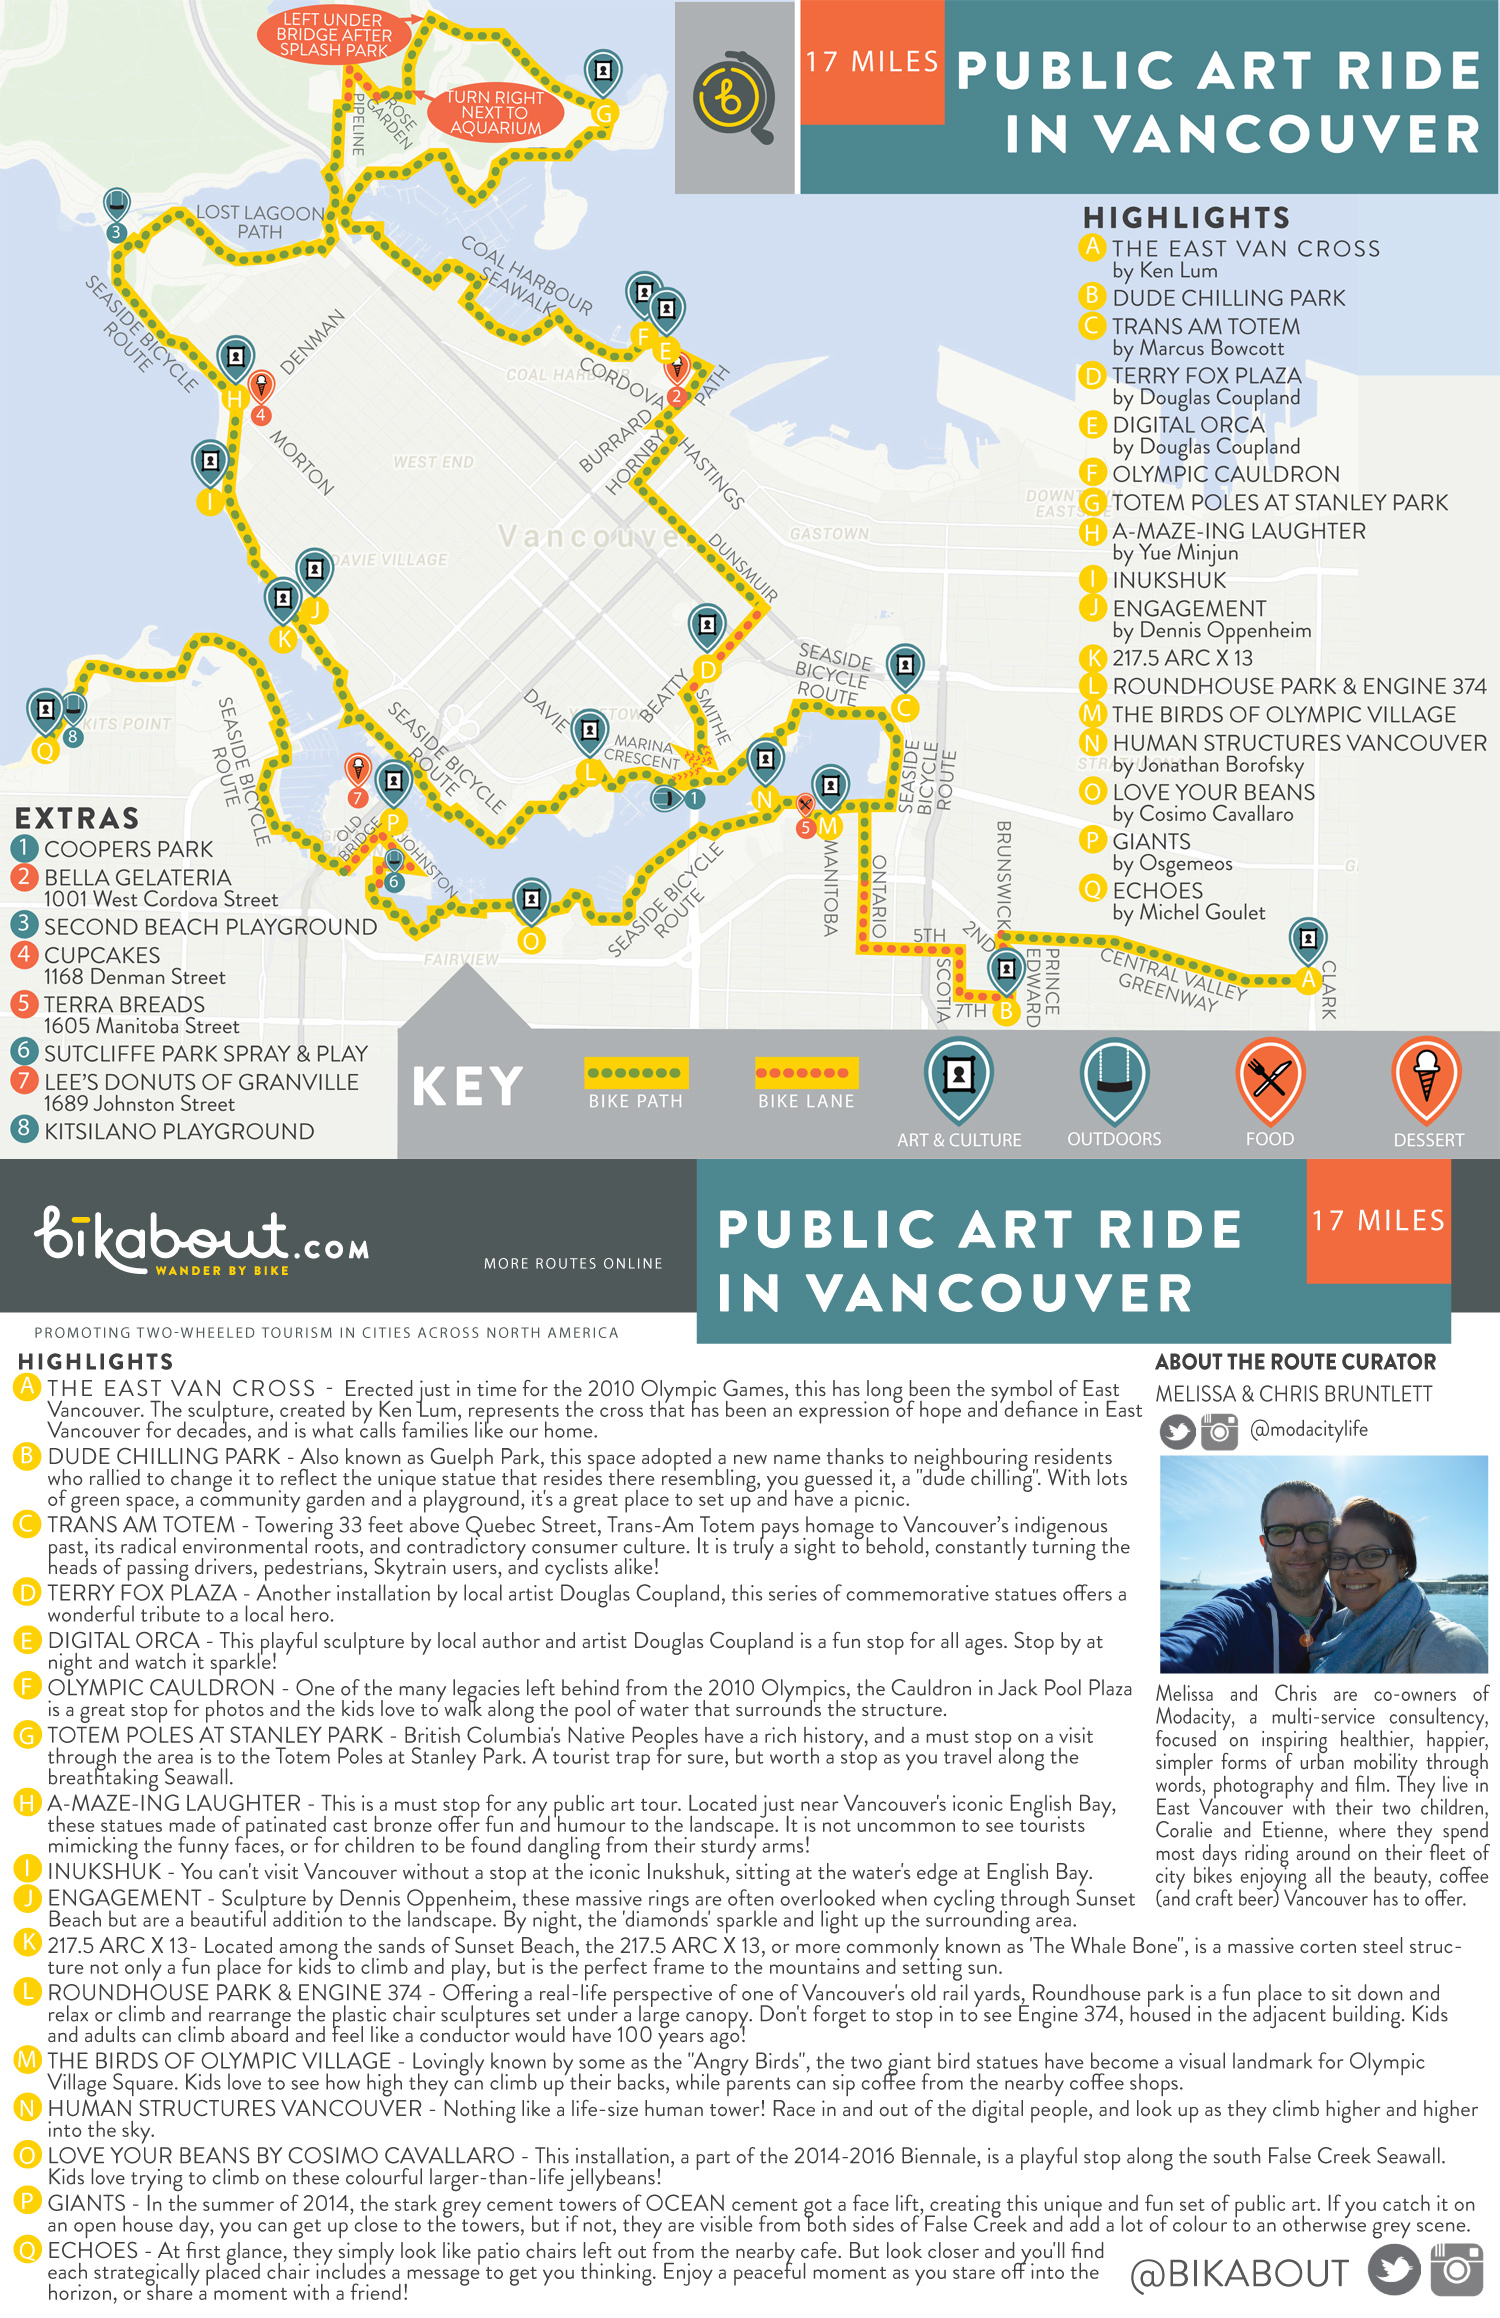 Public art ride in vancouver bikabout click on map image to download pdf sciox Image collections